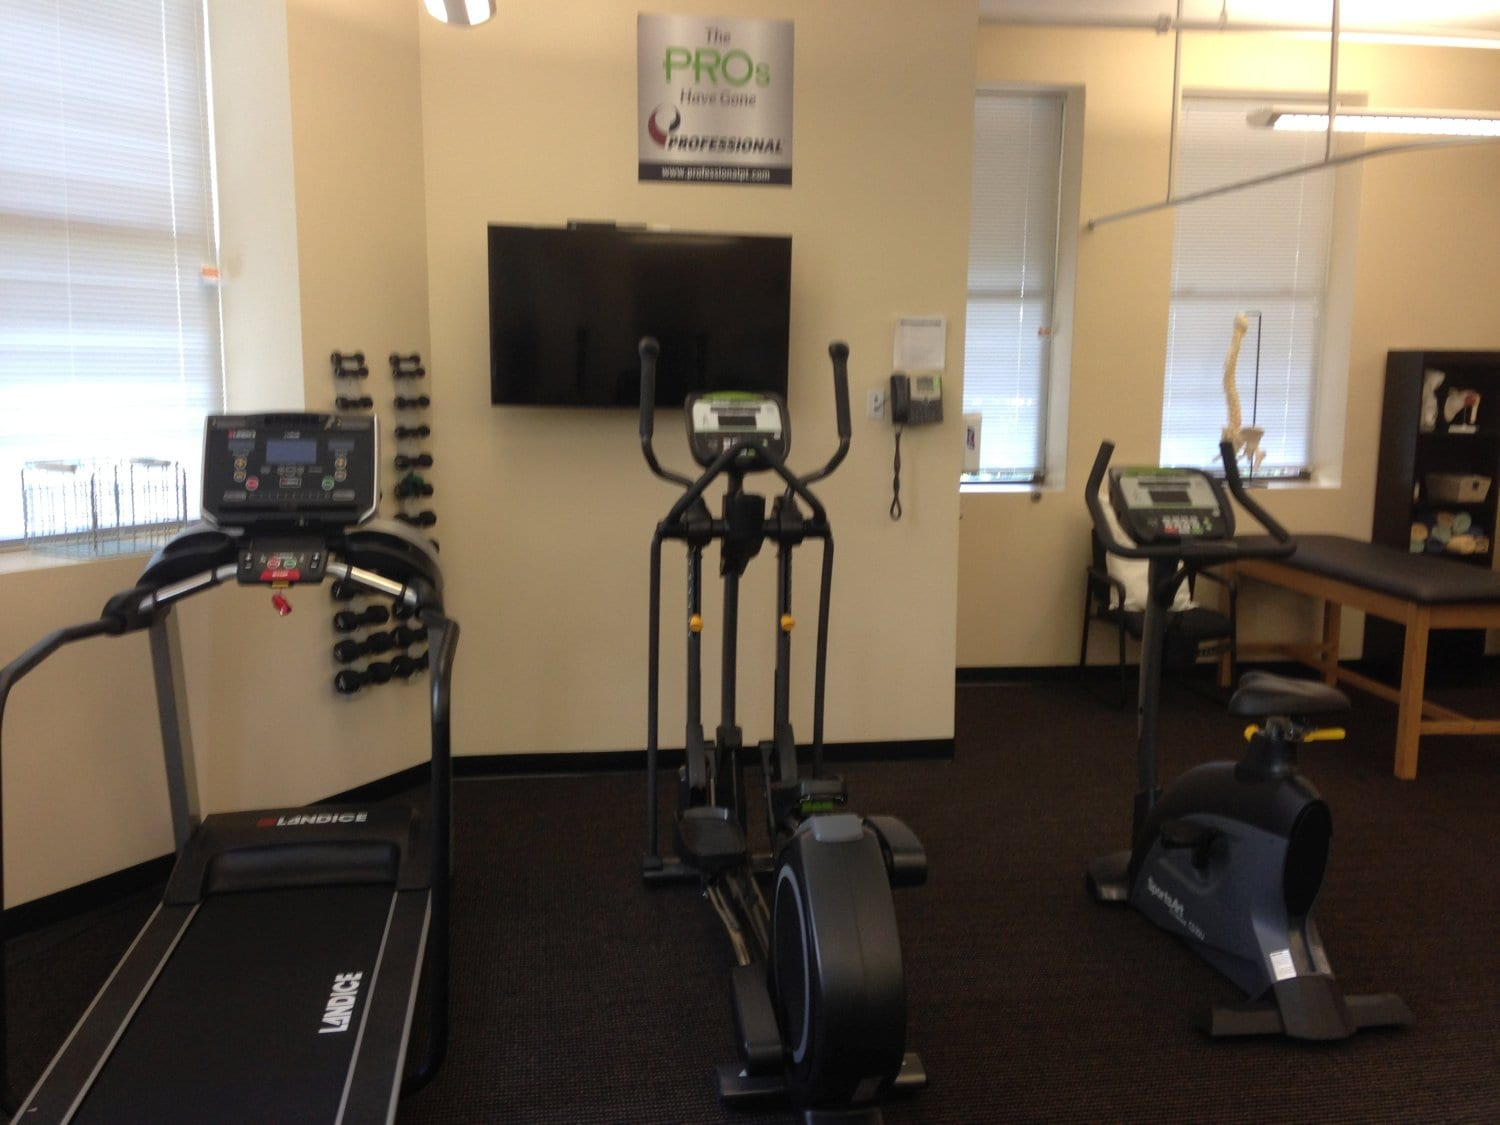 This is a shot of some of the equipment used at our physical therapy clinic in Watertown, Massachusetts.